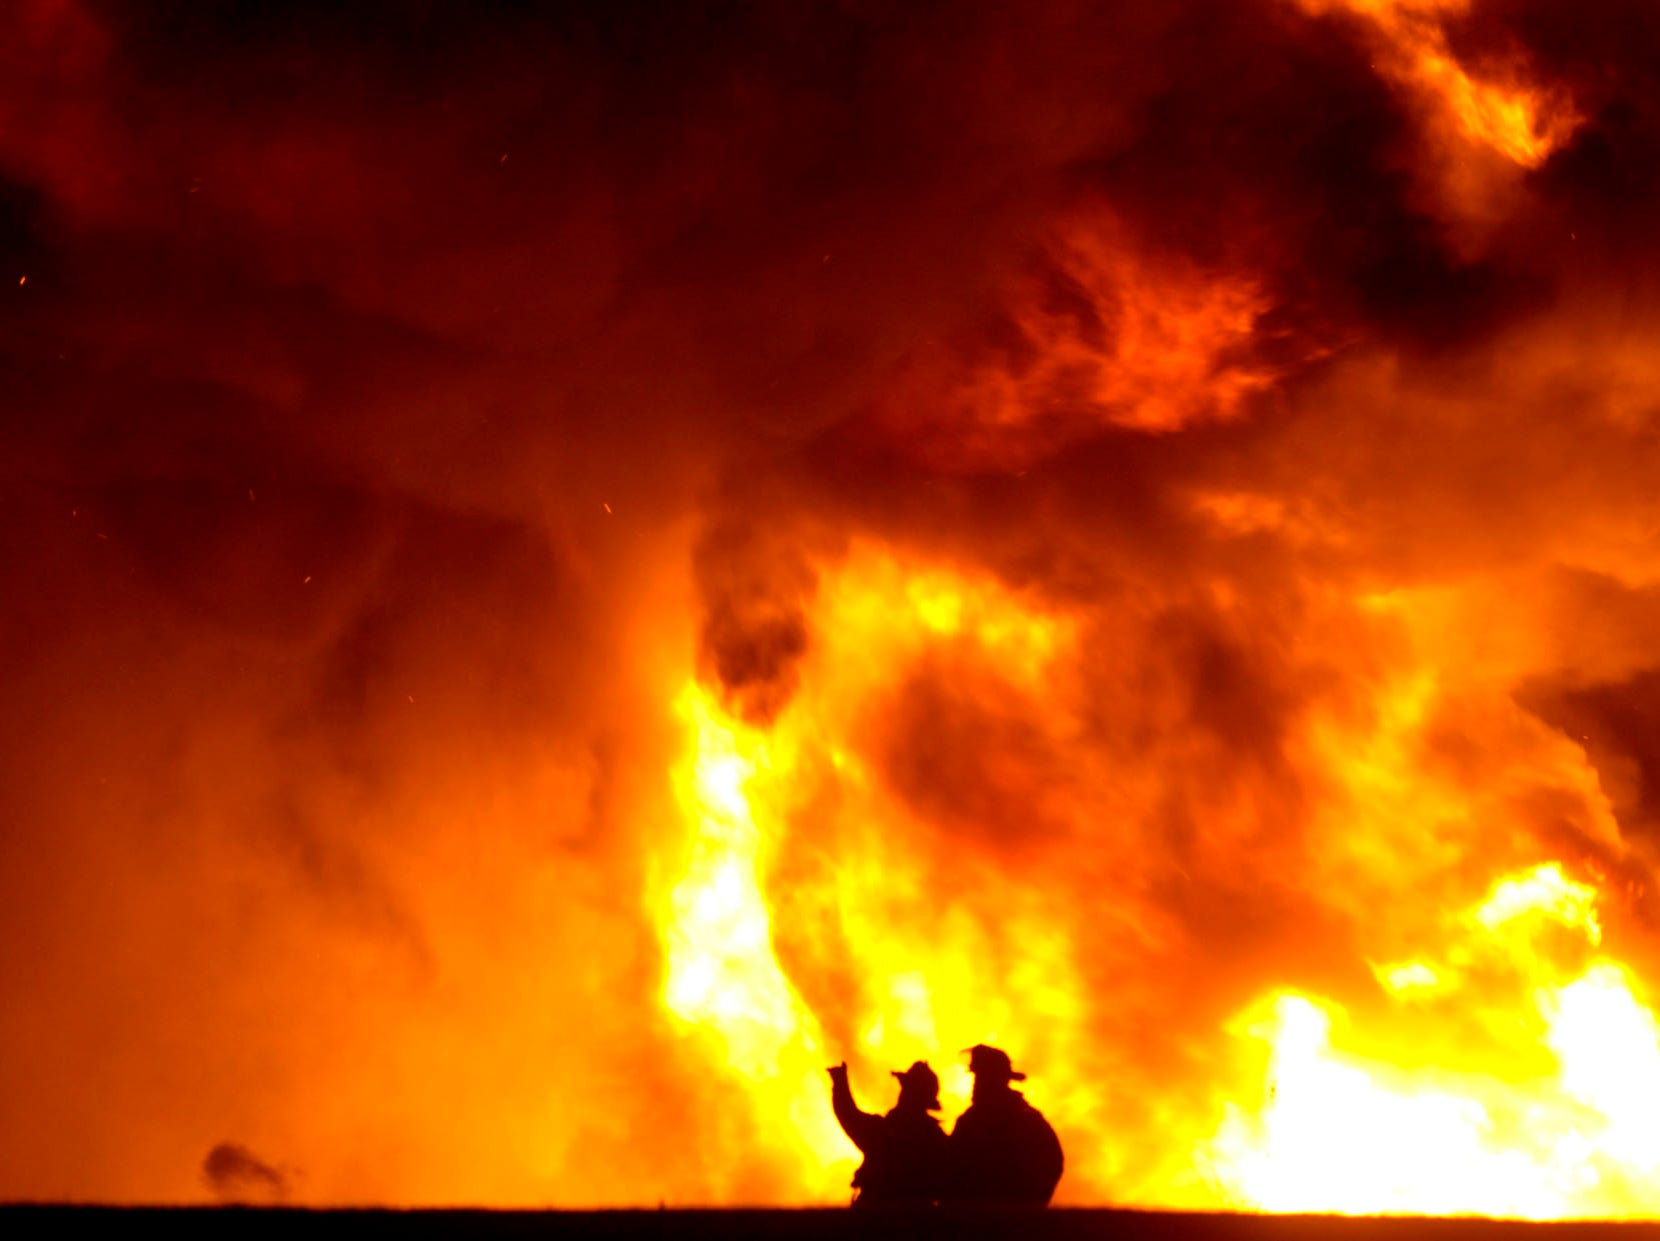 Fire fighters are dwarfed by multiple explosions from a four alarm fire at Adhesives Research, Inc. January 10, 2006.